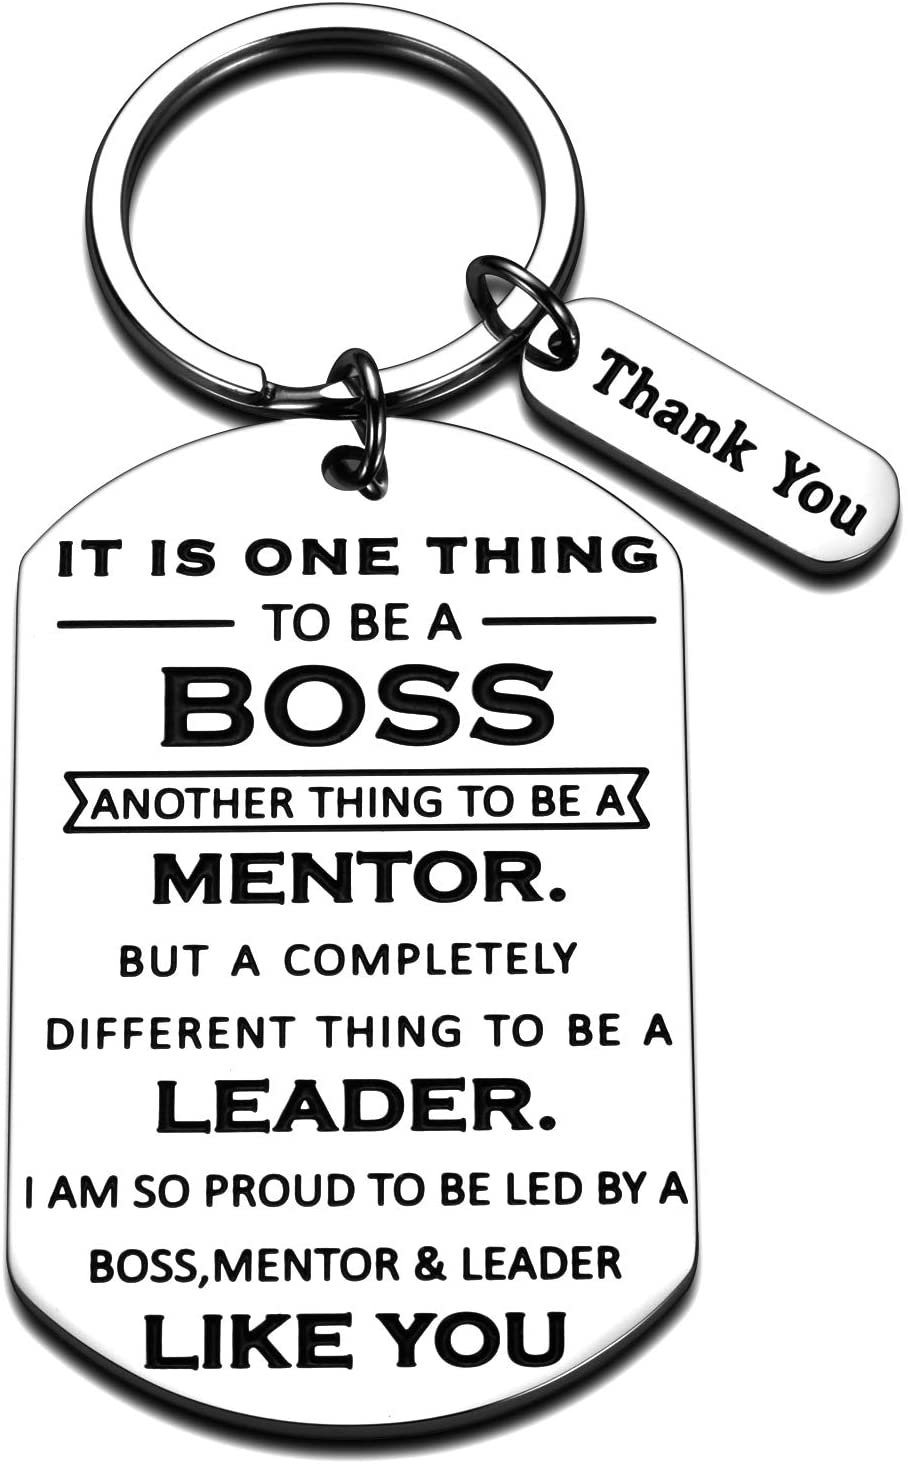 Boss Day Gifts for Women Men Office Keychain Thank You Boss Gift for Coworker Mentor Supervisor Leader Christmas Birthday Leaving Going Away Retirement Gifts Boss Lady Goodbye Gifts to Friend Him Her